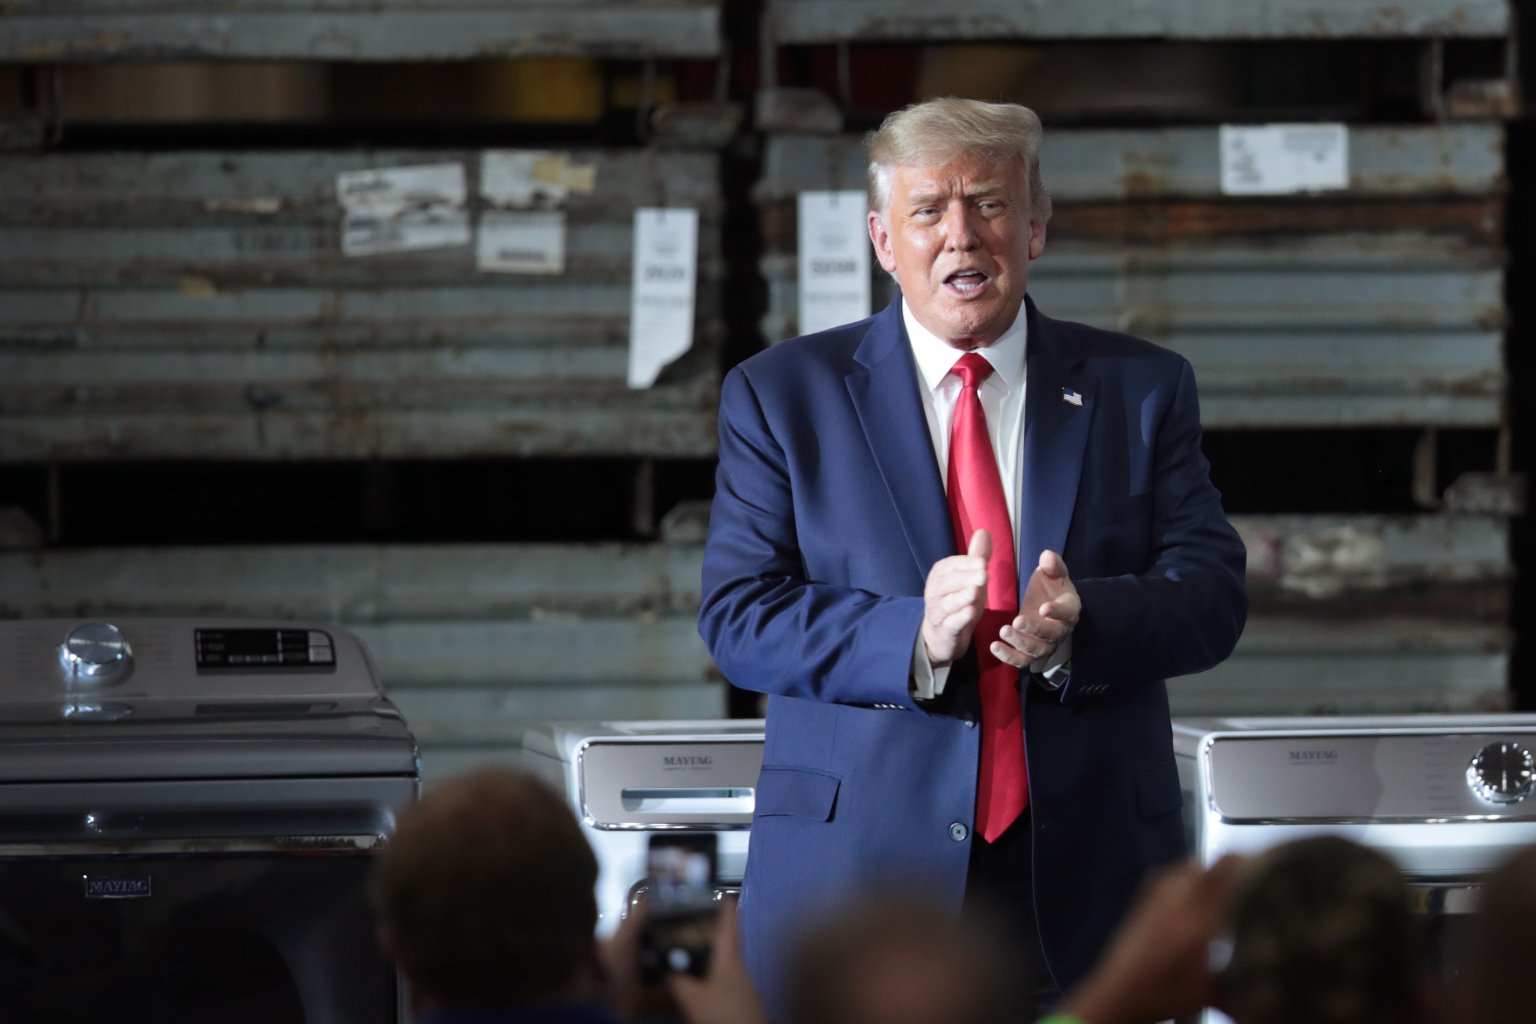 Trump moves to extend unemployment benefits, suspend payroll taxes after talks break down